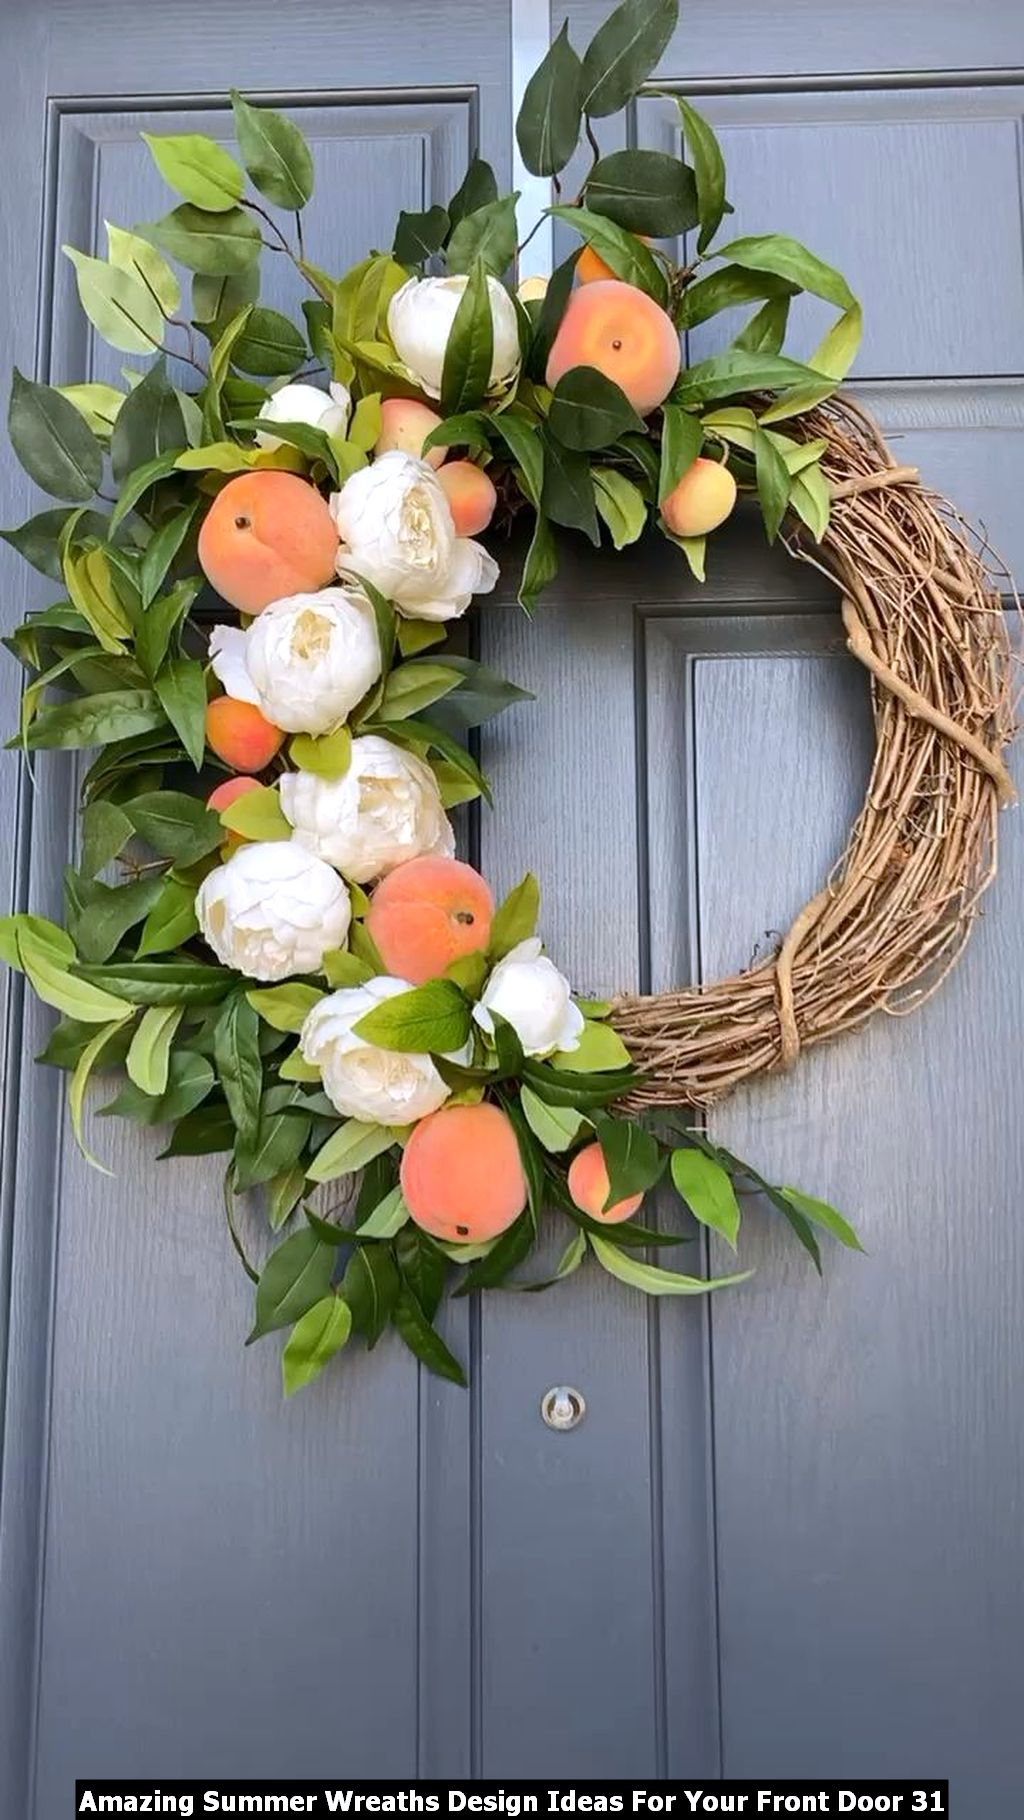 Amazing Summer Wreaths Design Ideas For Your Front Door 31